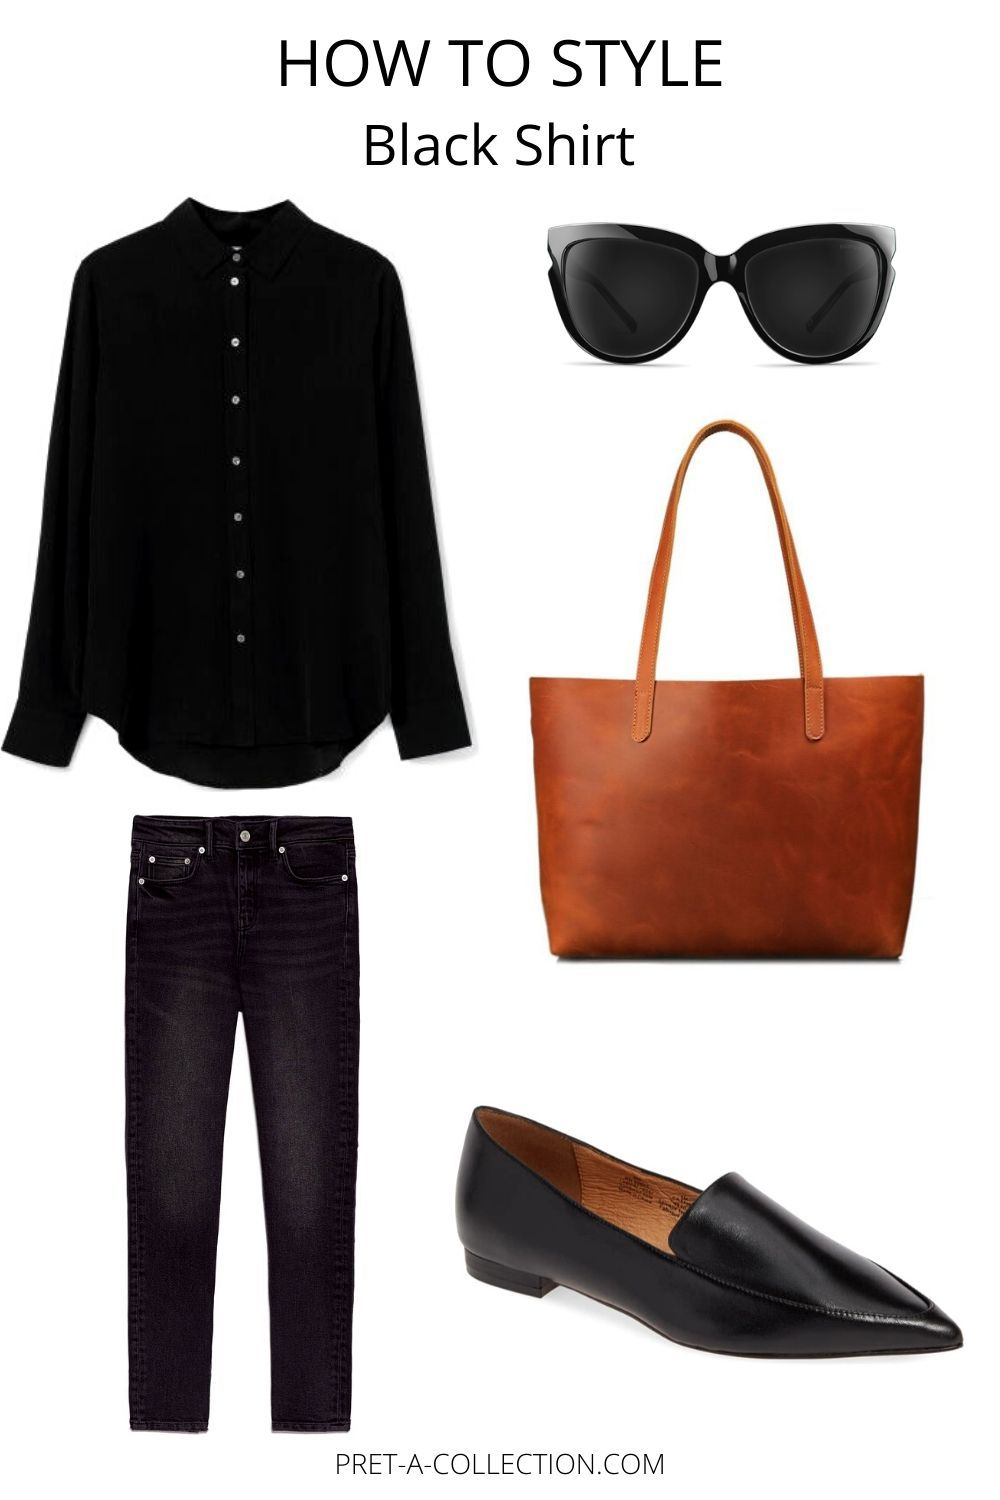 How To Style Black Shirt #fashionbasics